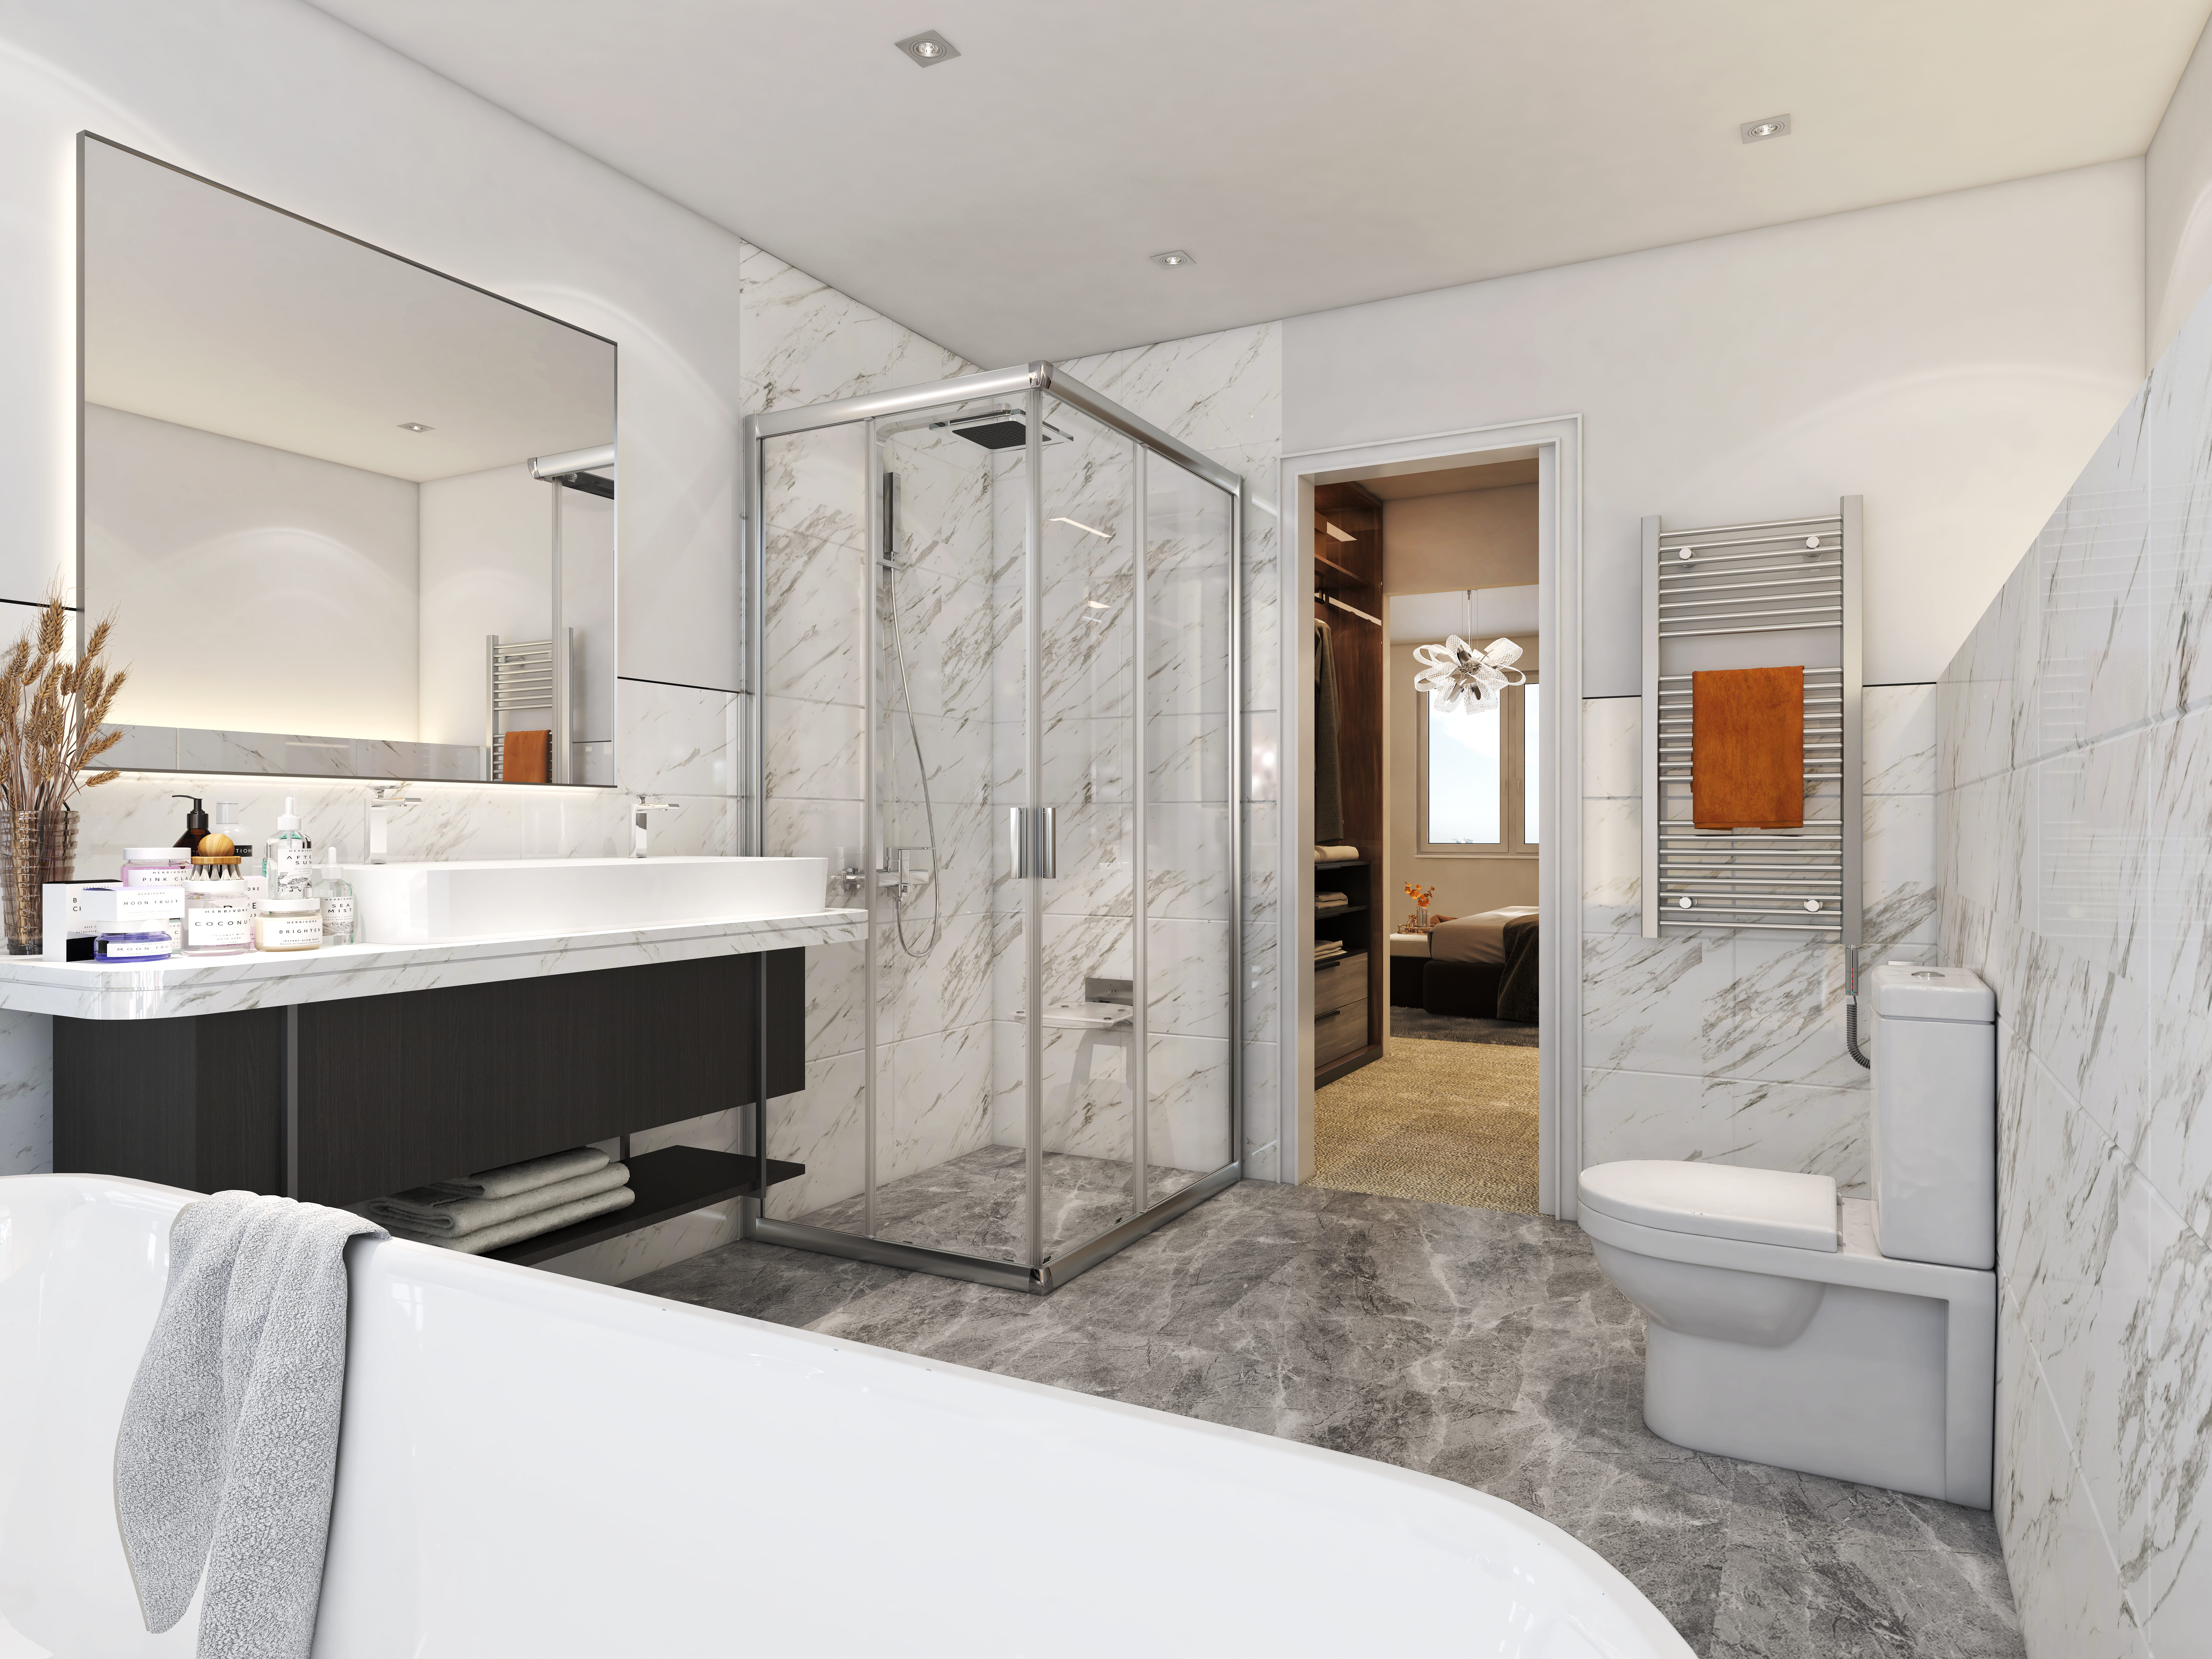 Modern bathroom with marble tiles